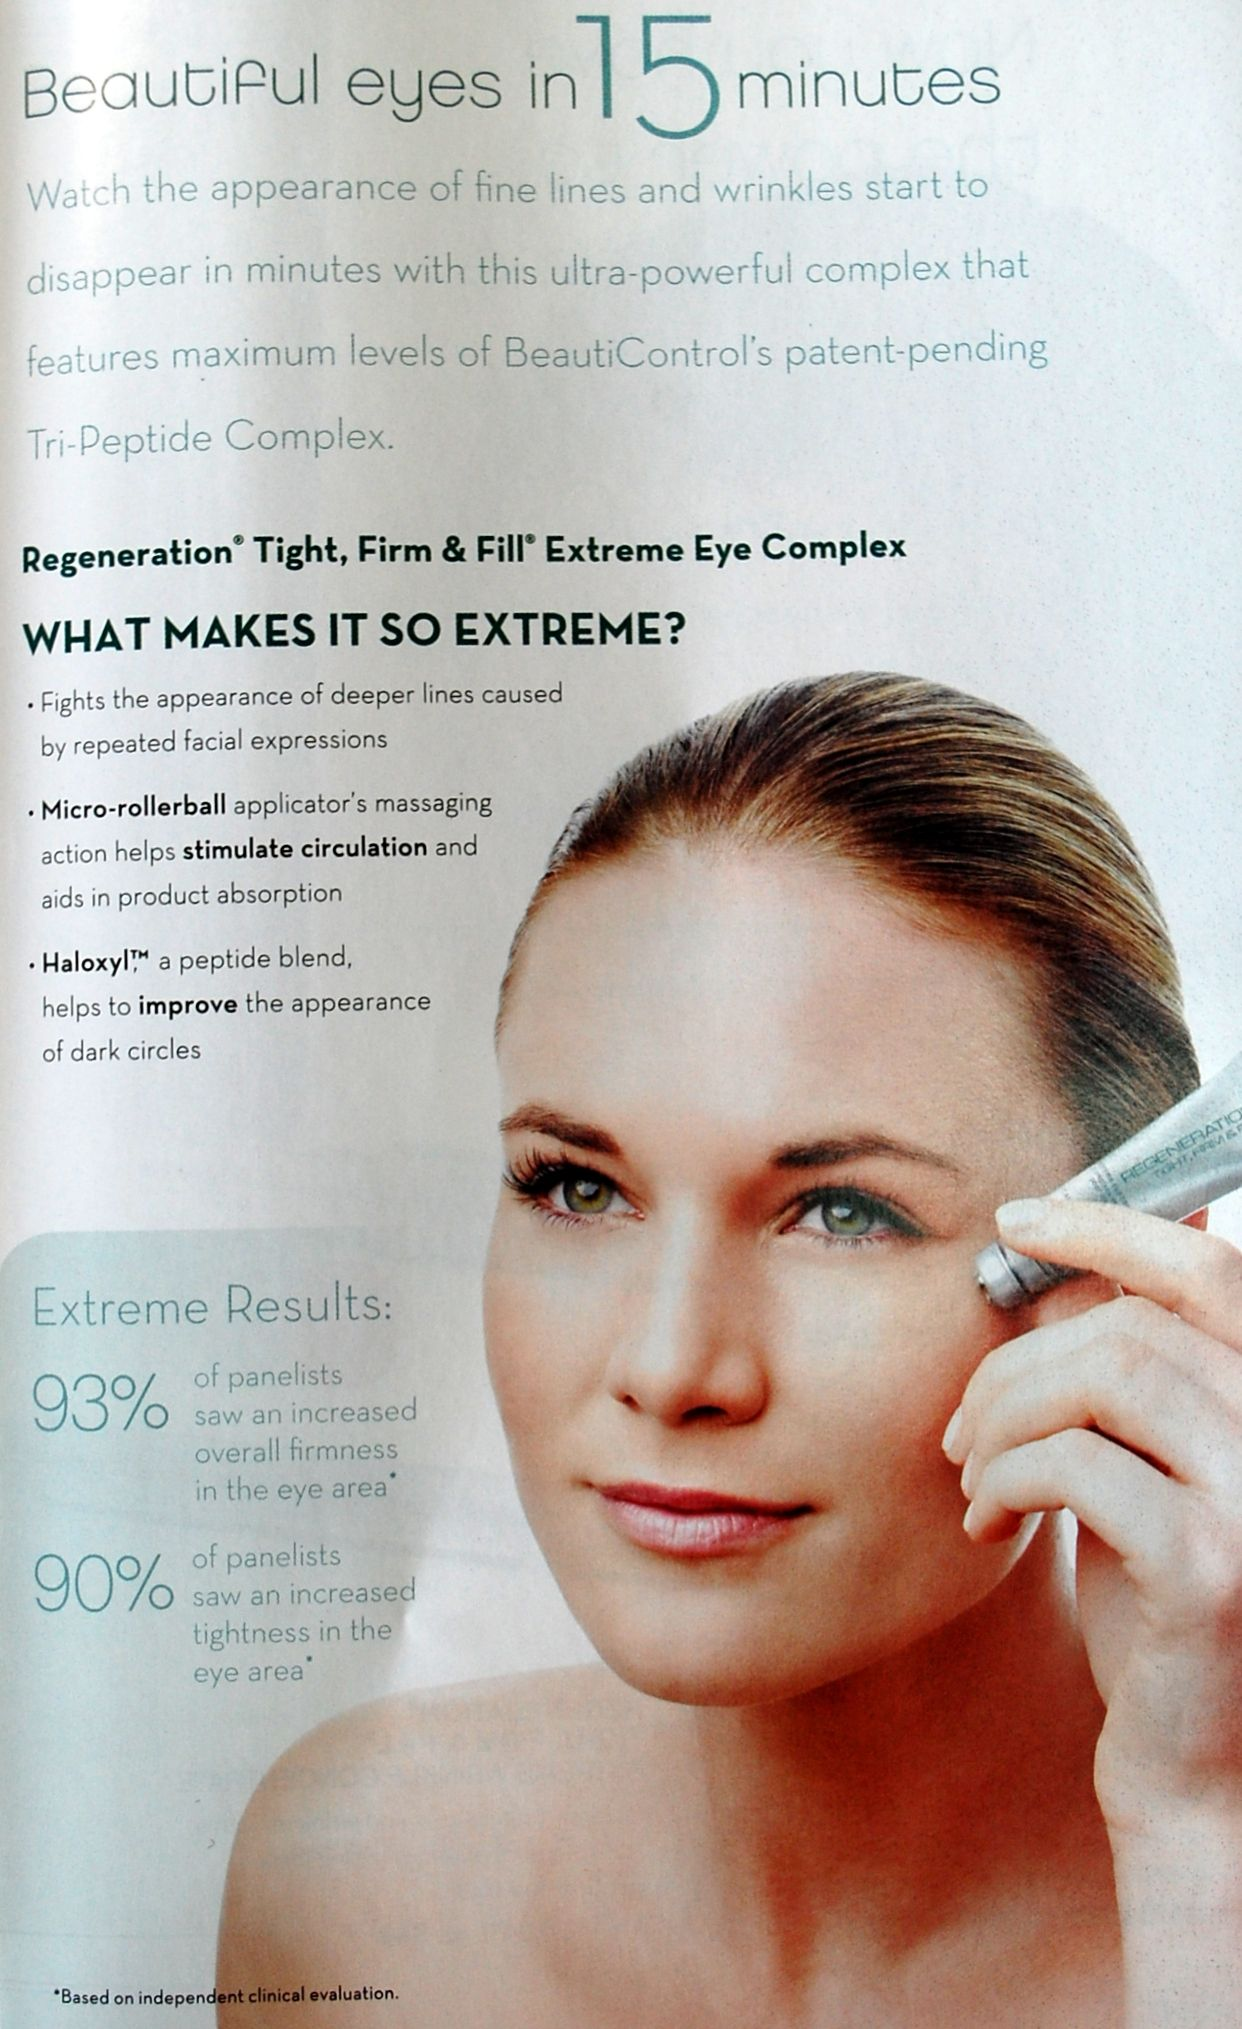 Skincare 101: Fighting Fine Lines and Wrinkles